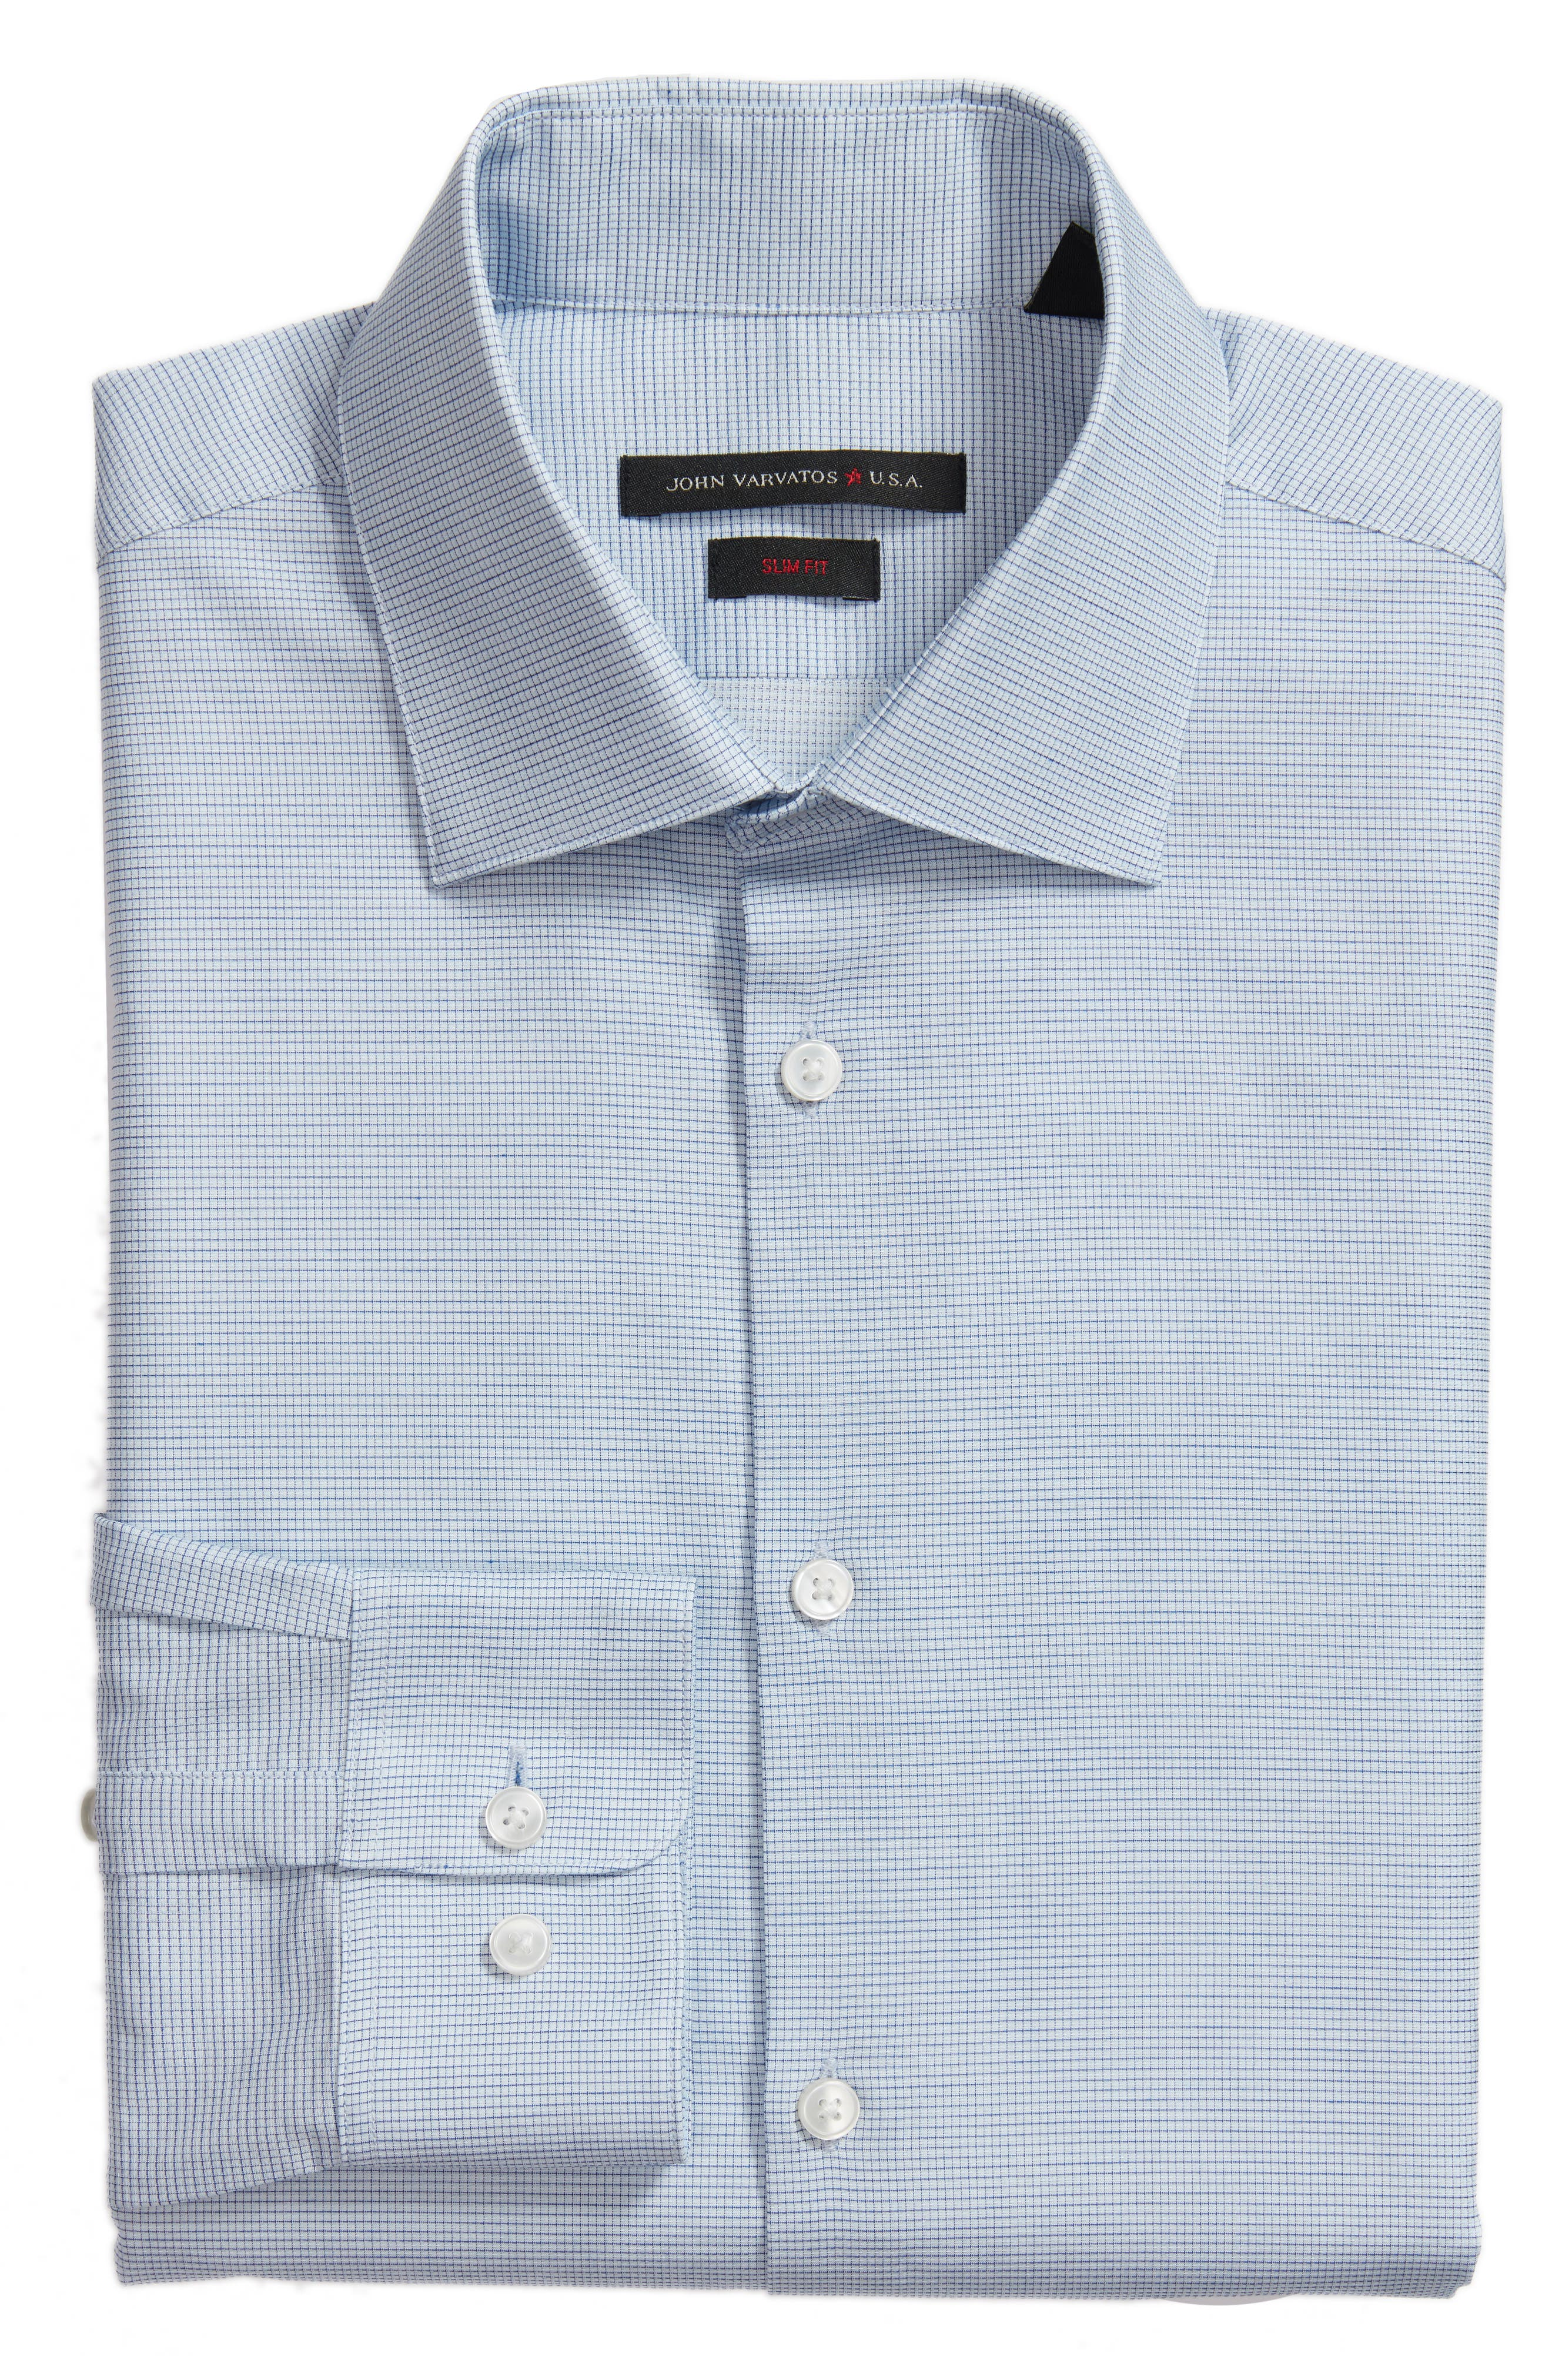 Slim Fit Stretch Microcheck Dress Shirt,                             Alternate thumbnail 6, color,                             Icicle Blue